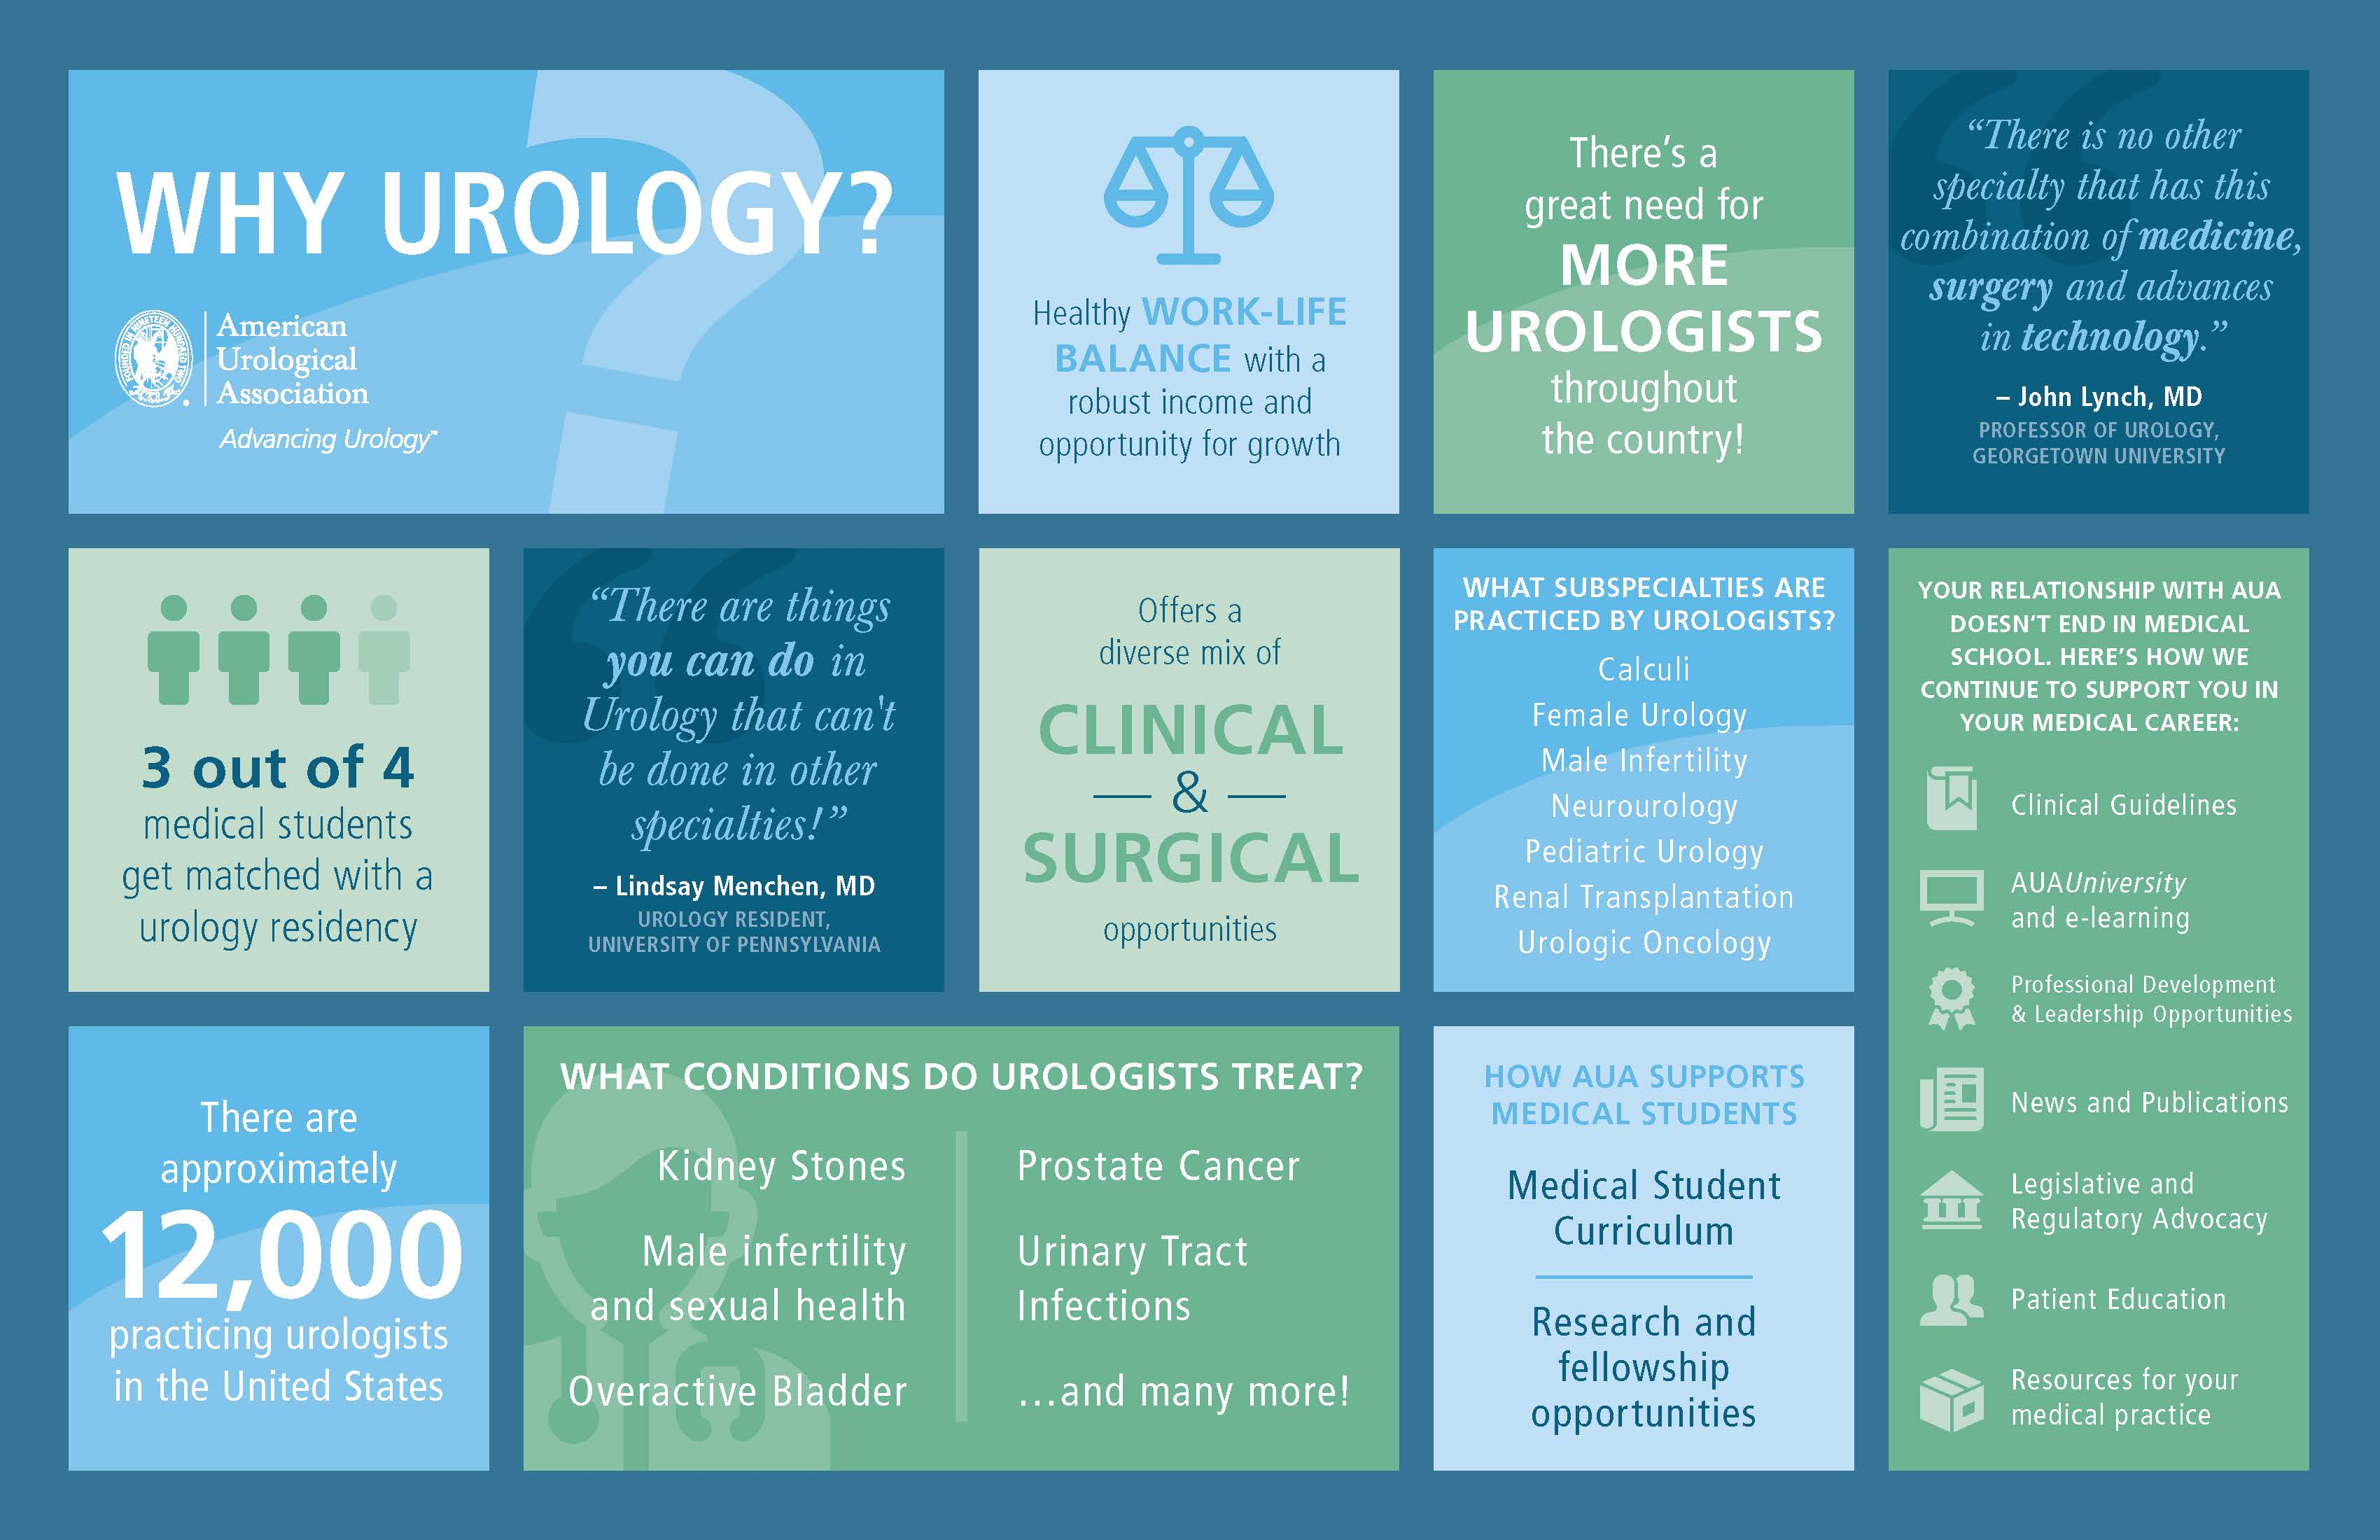 Why Urology